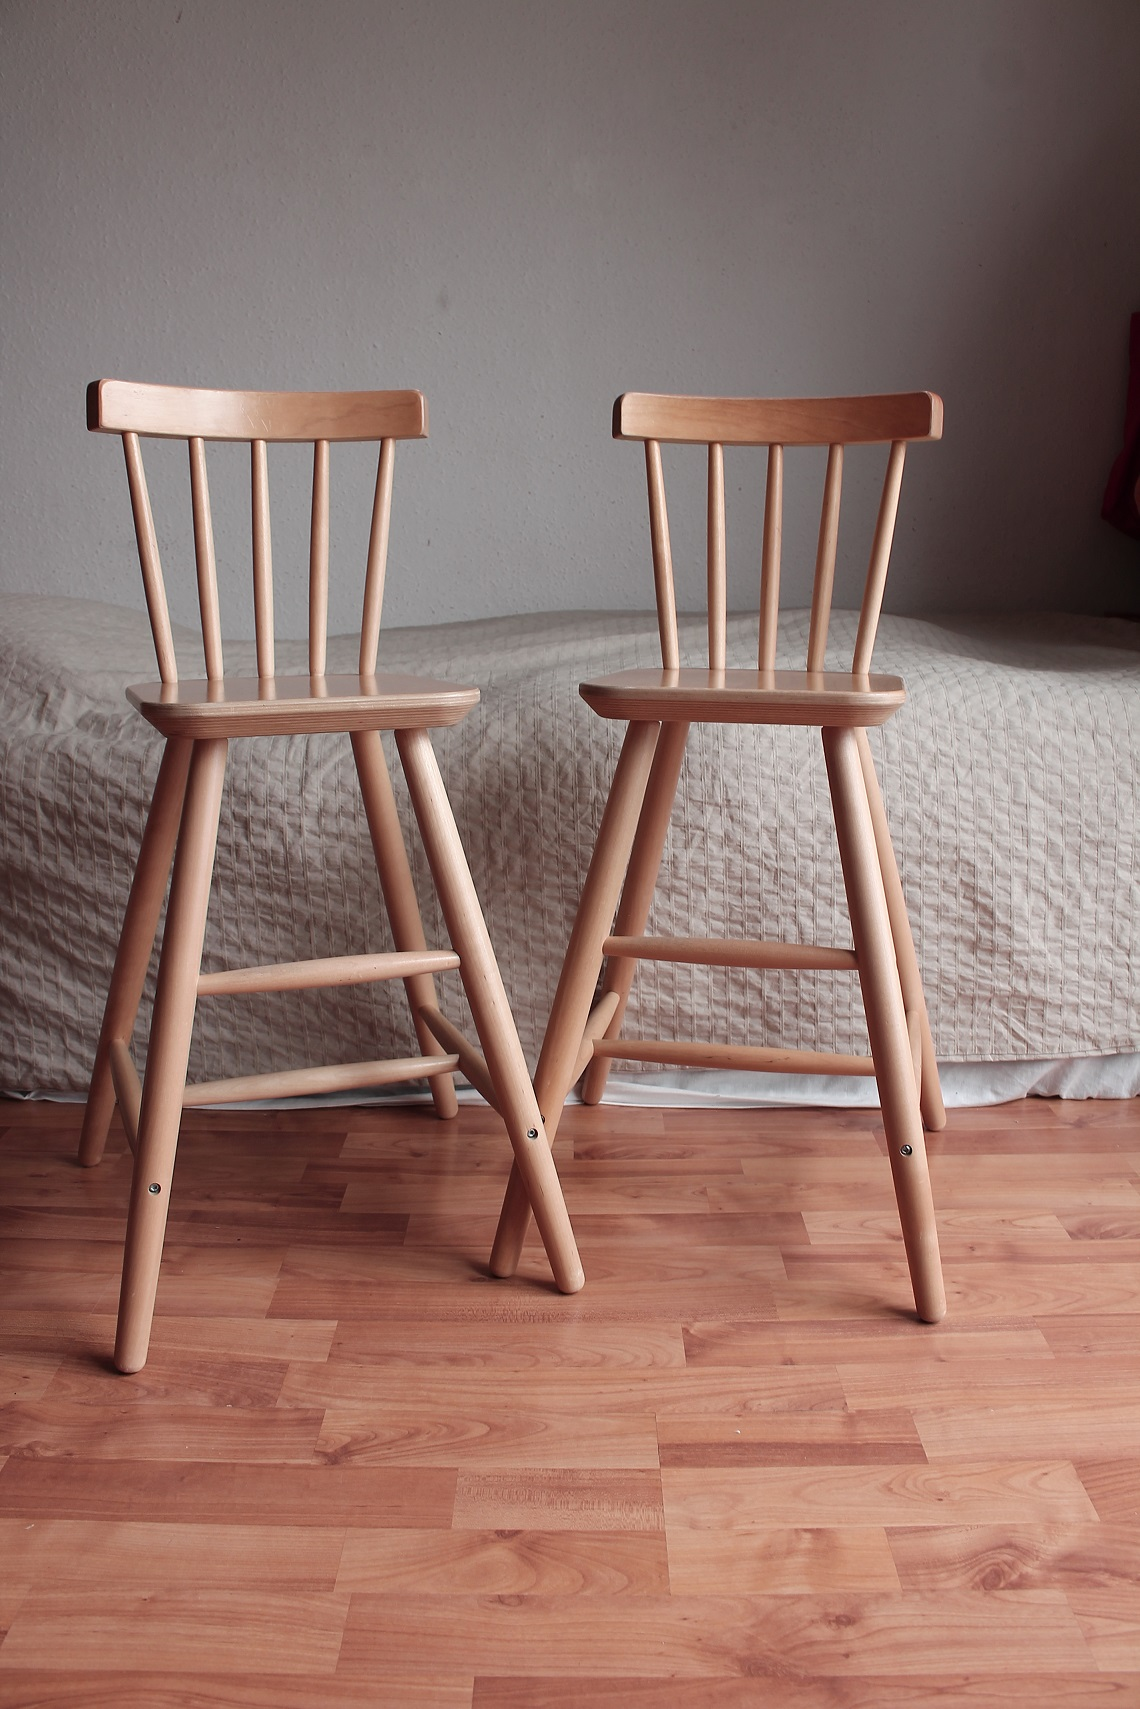 ikea-tall-chairs-for-218466955